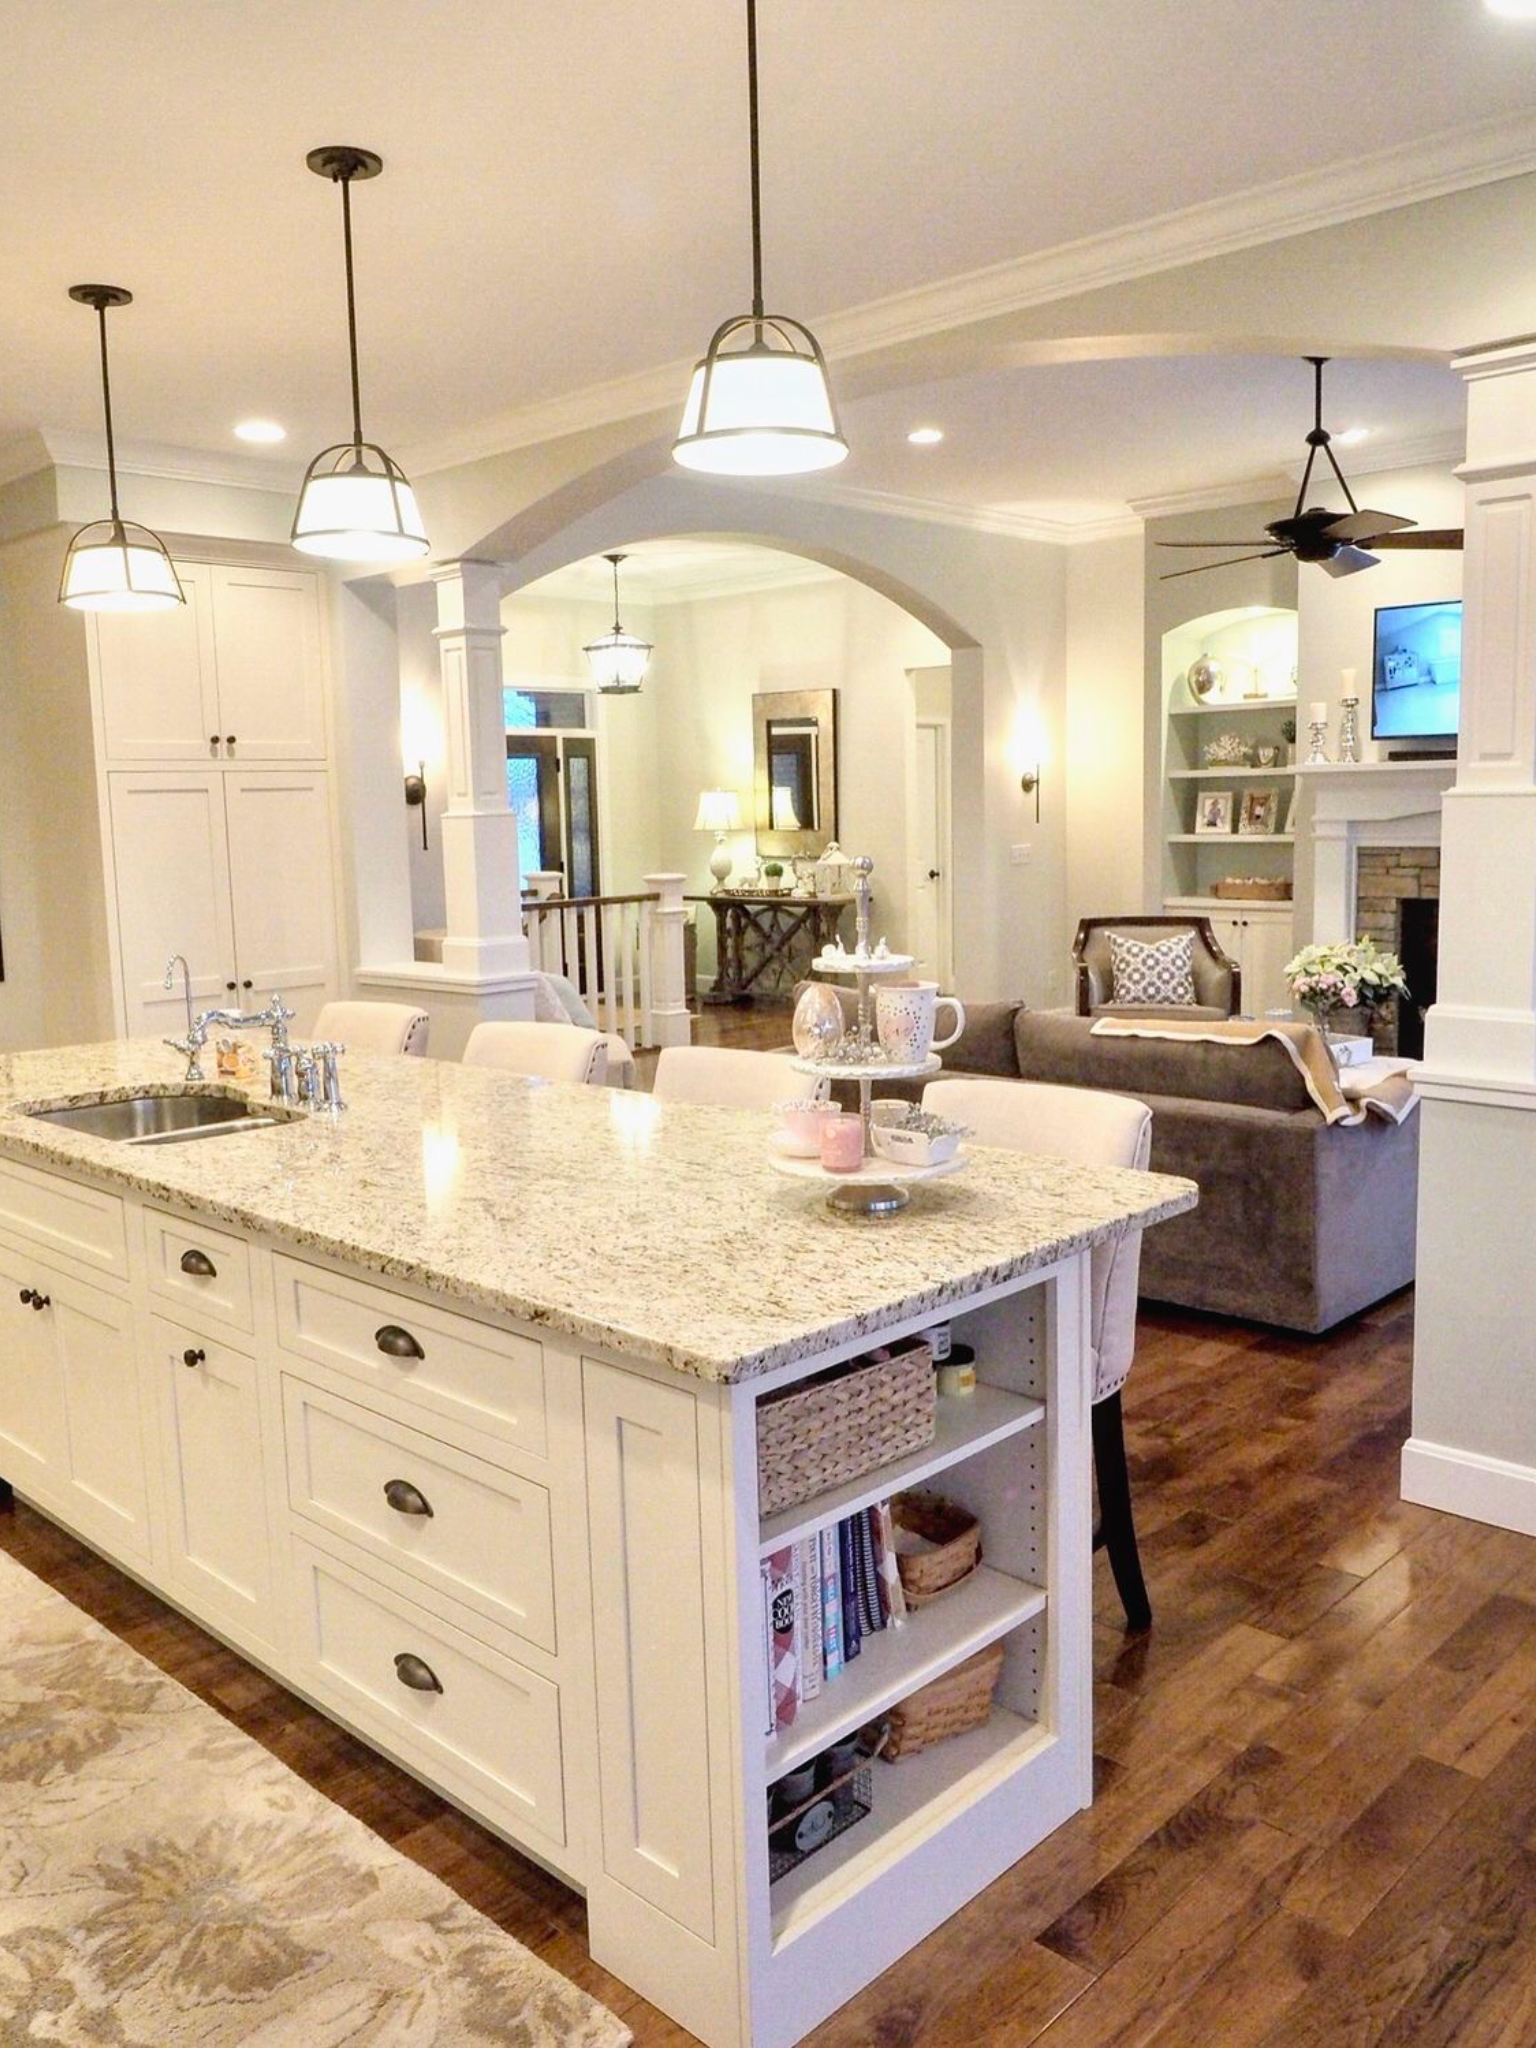 Genial White Kitchen, Off White Cabinets, Sherwin Williams Conservative Gray, New  Venetian Gold